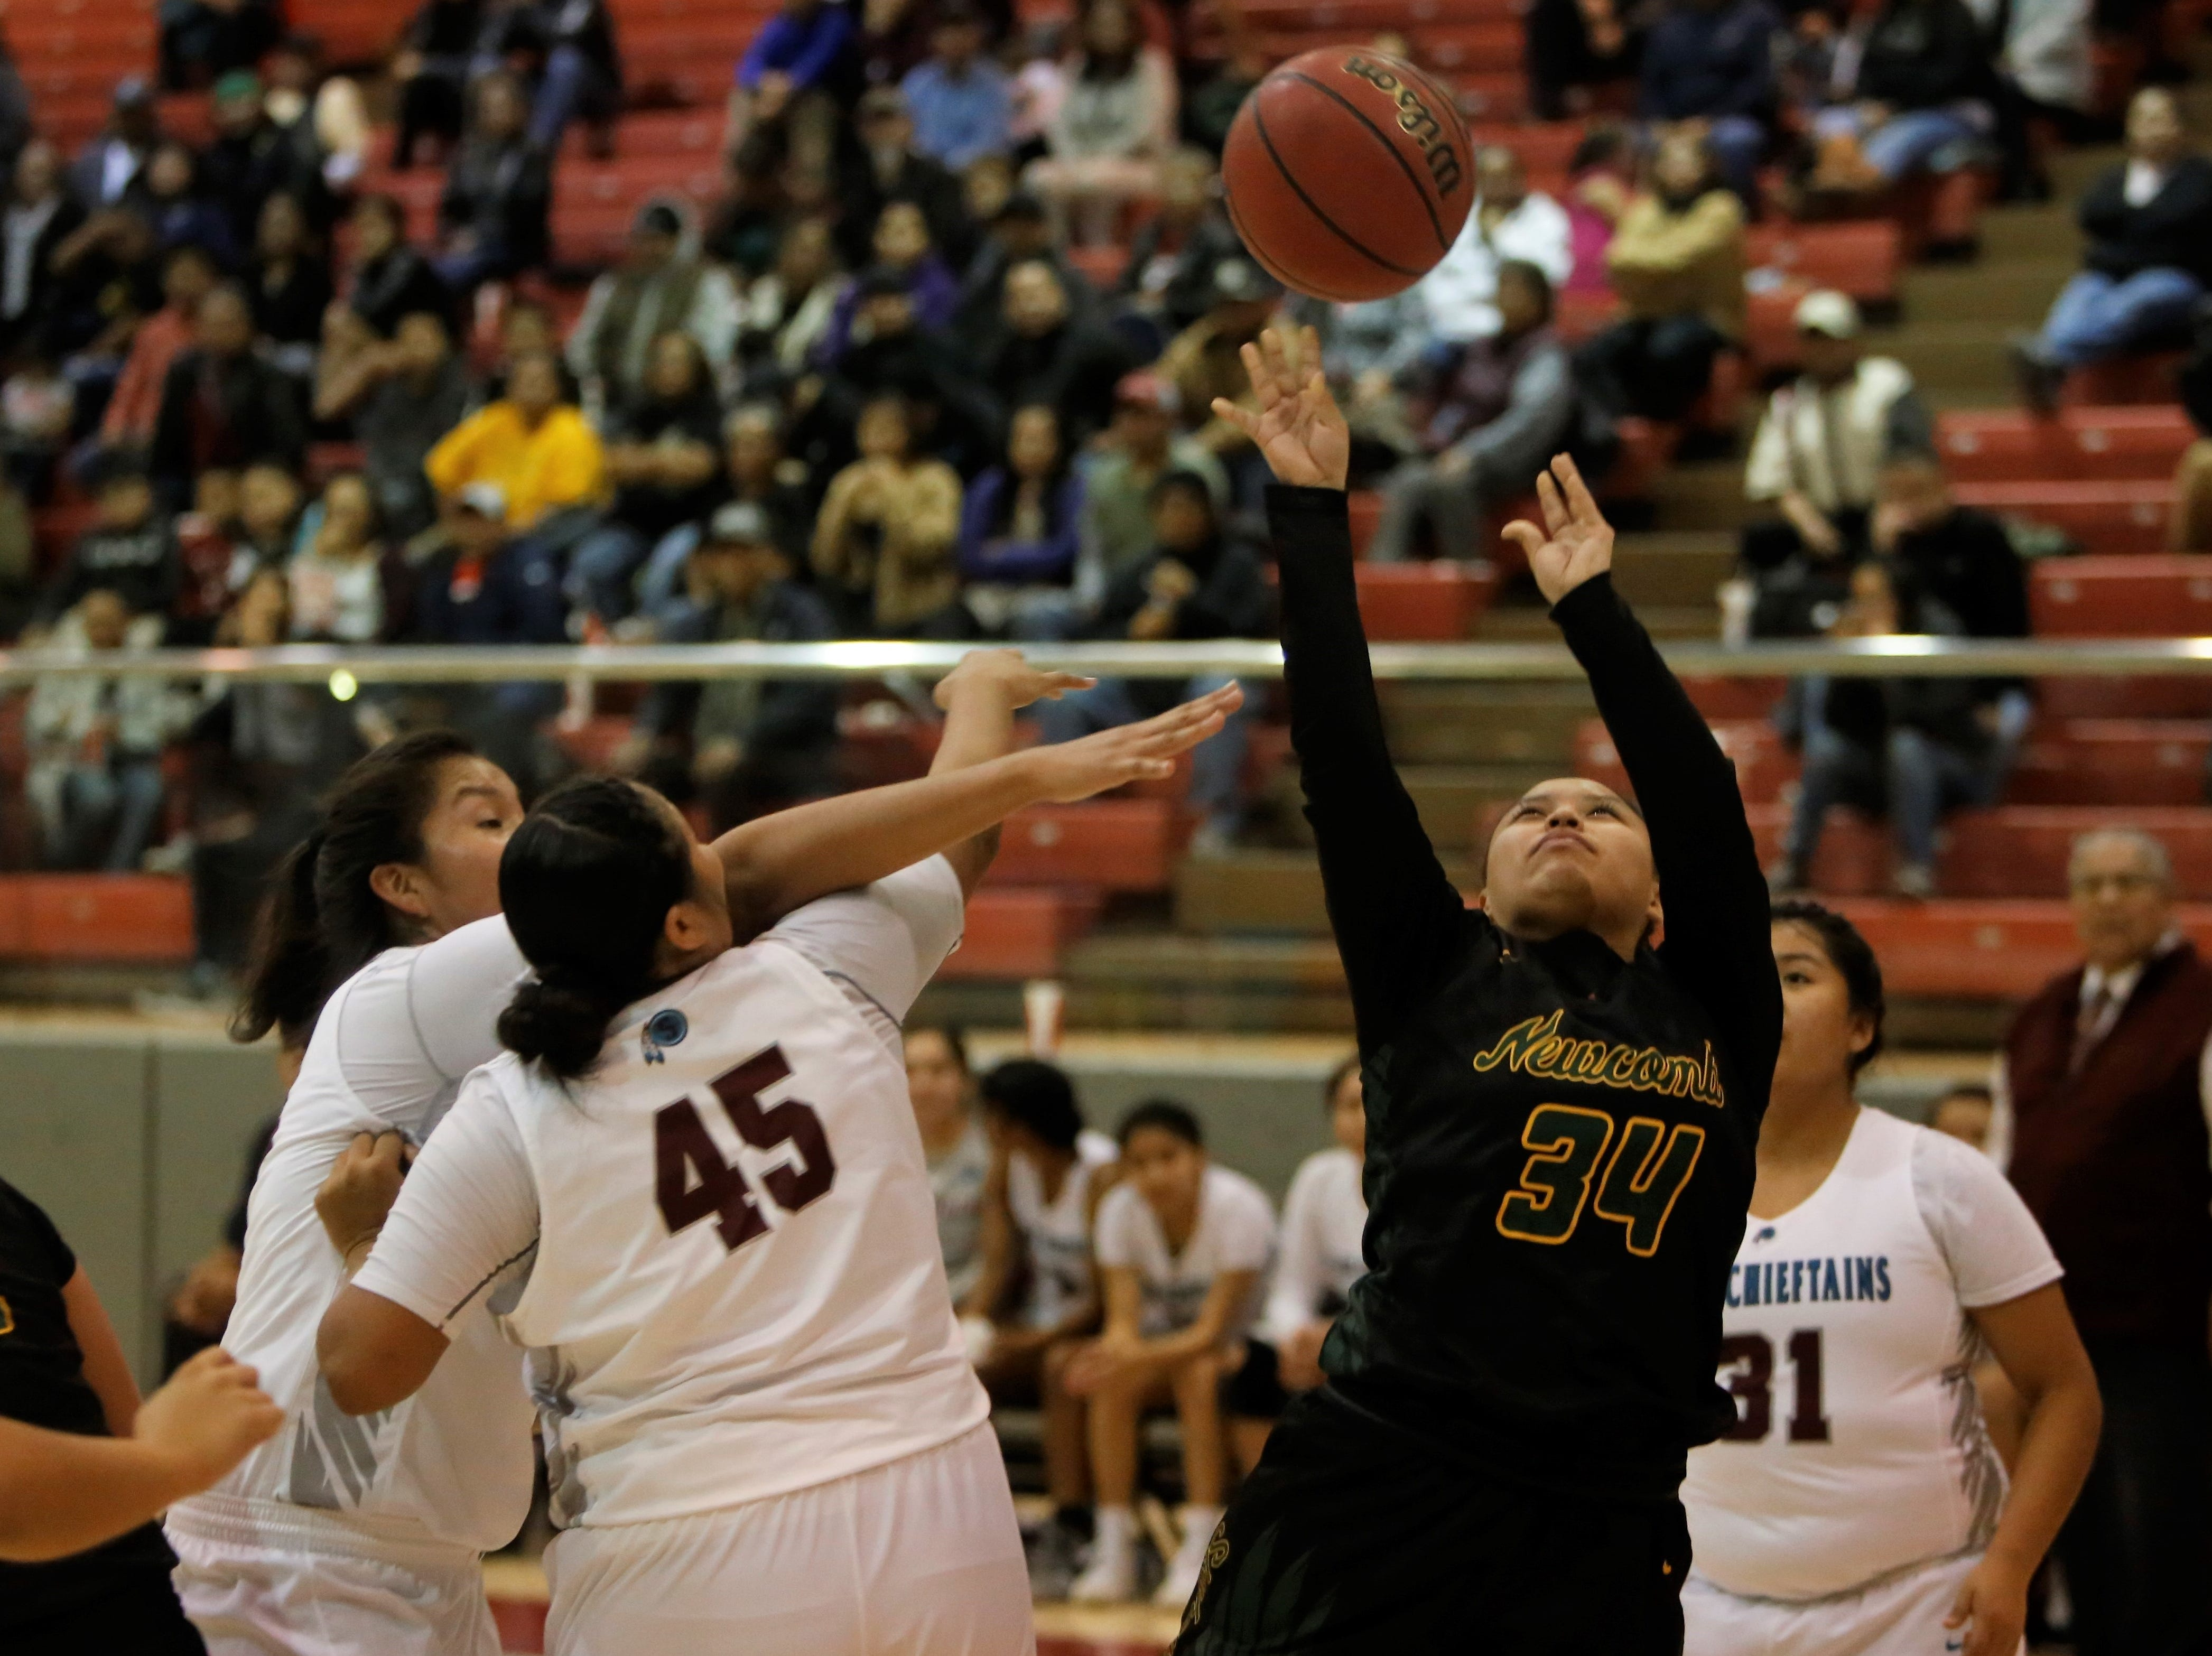 Newcomb's Bryanna Curley puts up a contested shot against Shiprock during Thursday's game at the Chieftain Pit in Shiprock.